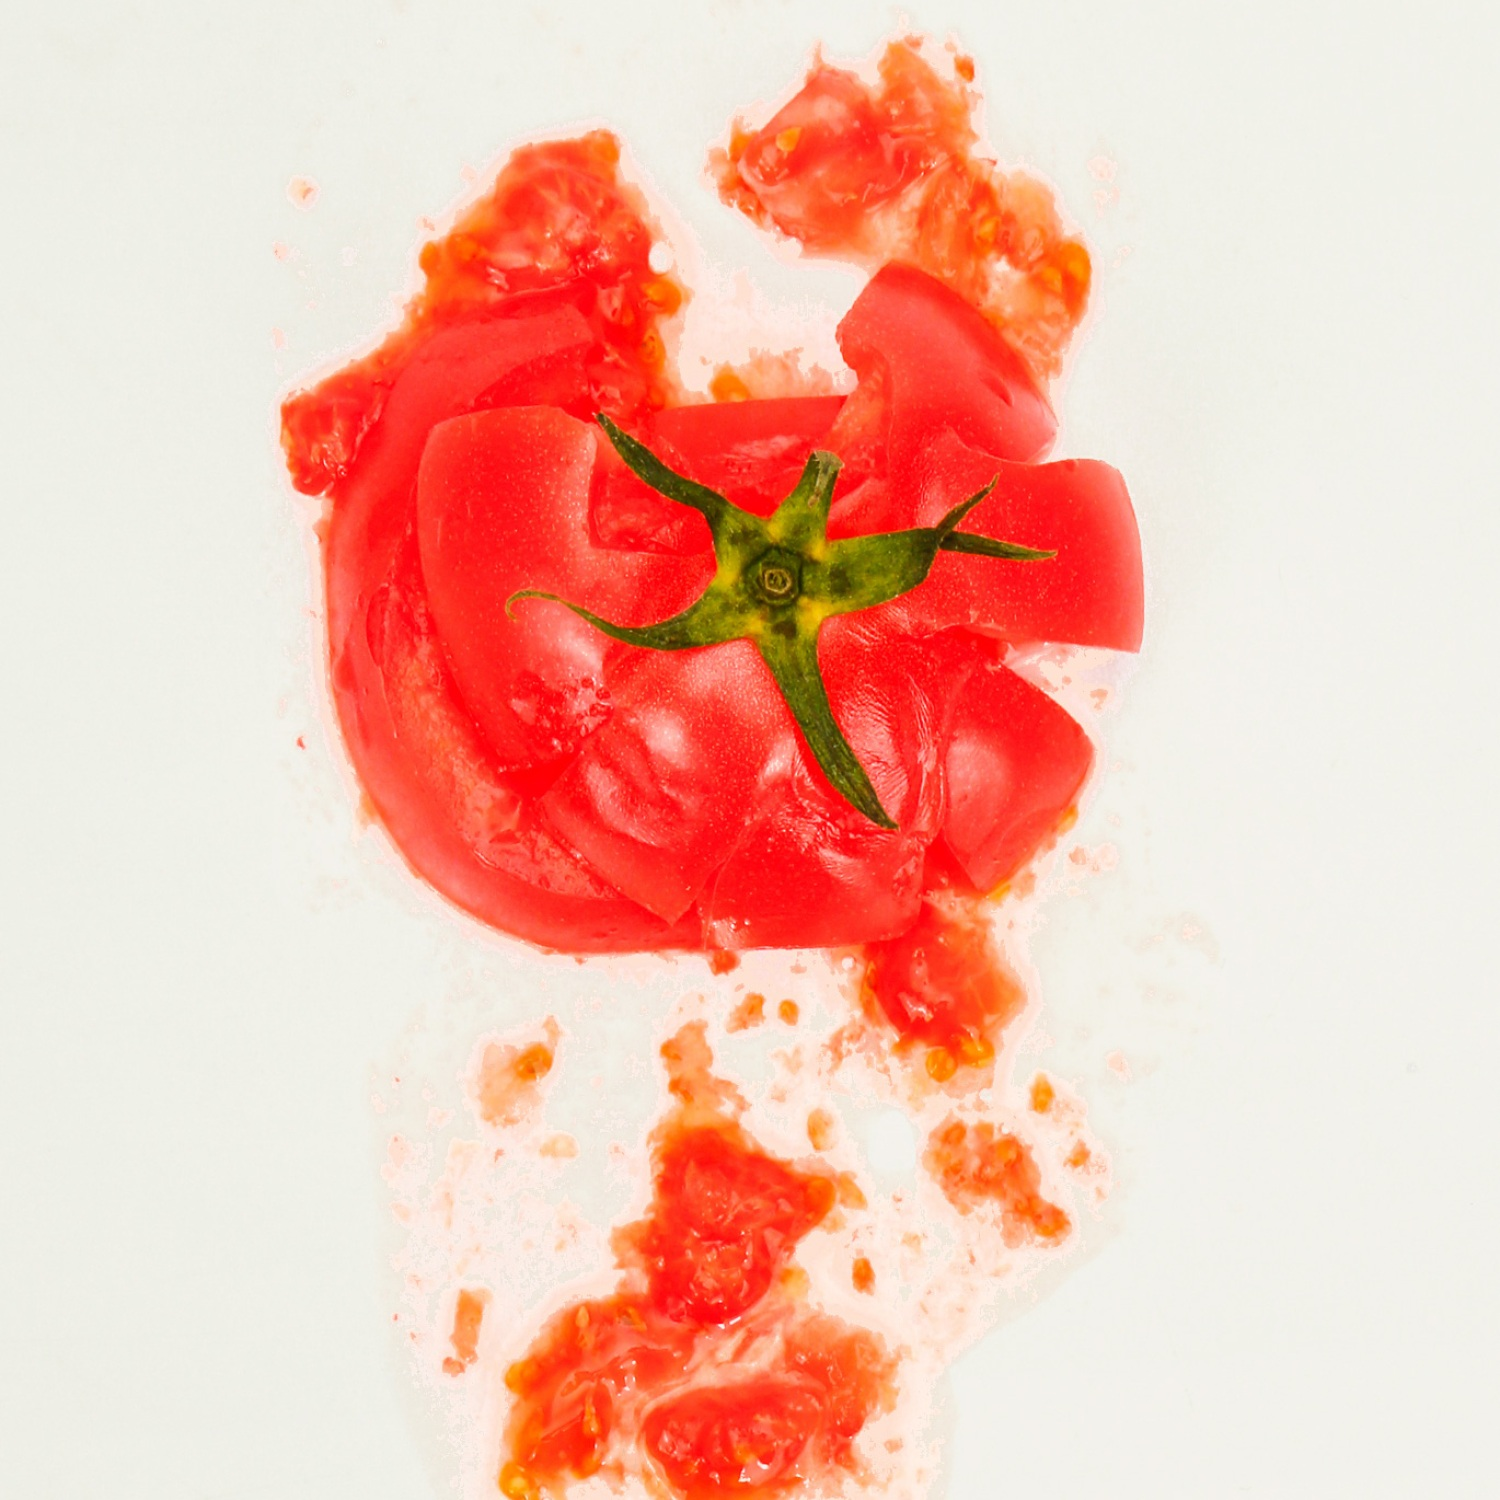 Tomato splatted against a kitchen wall